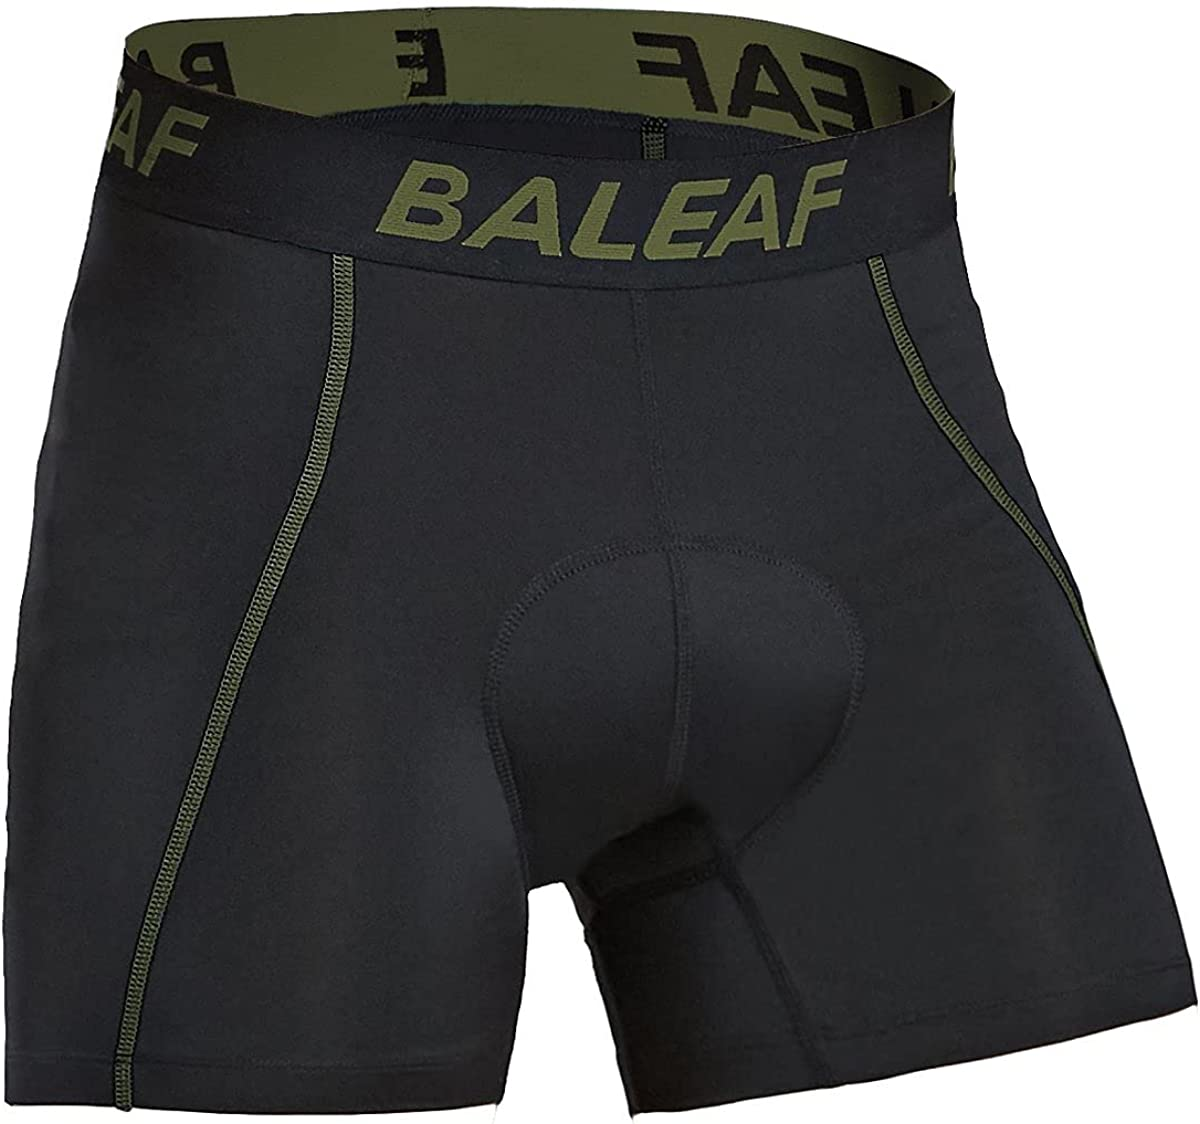 BALEAF Men's OFFicial Padded Bike Shorts Quantity limited Mou Padding 3D Cycling Underwear